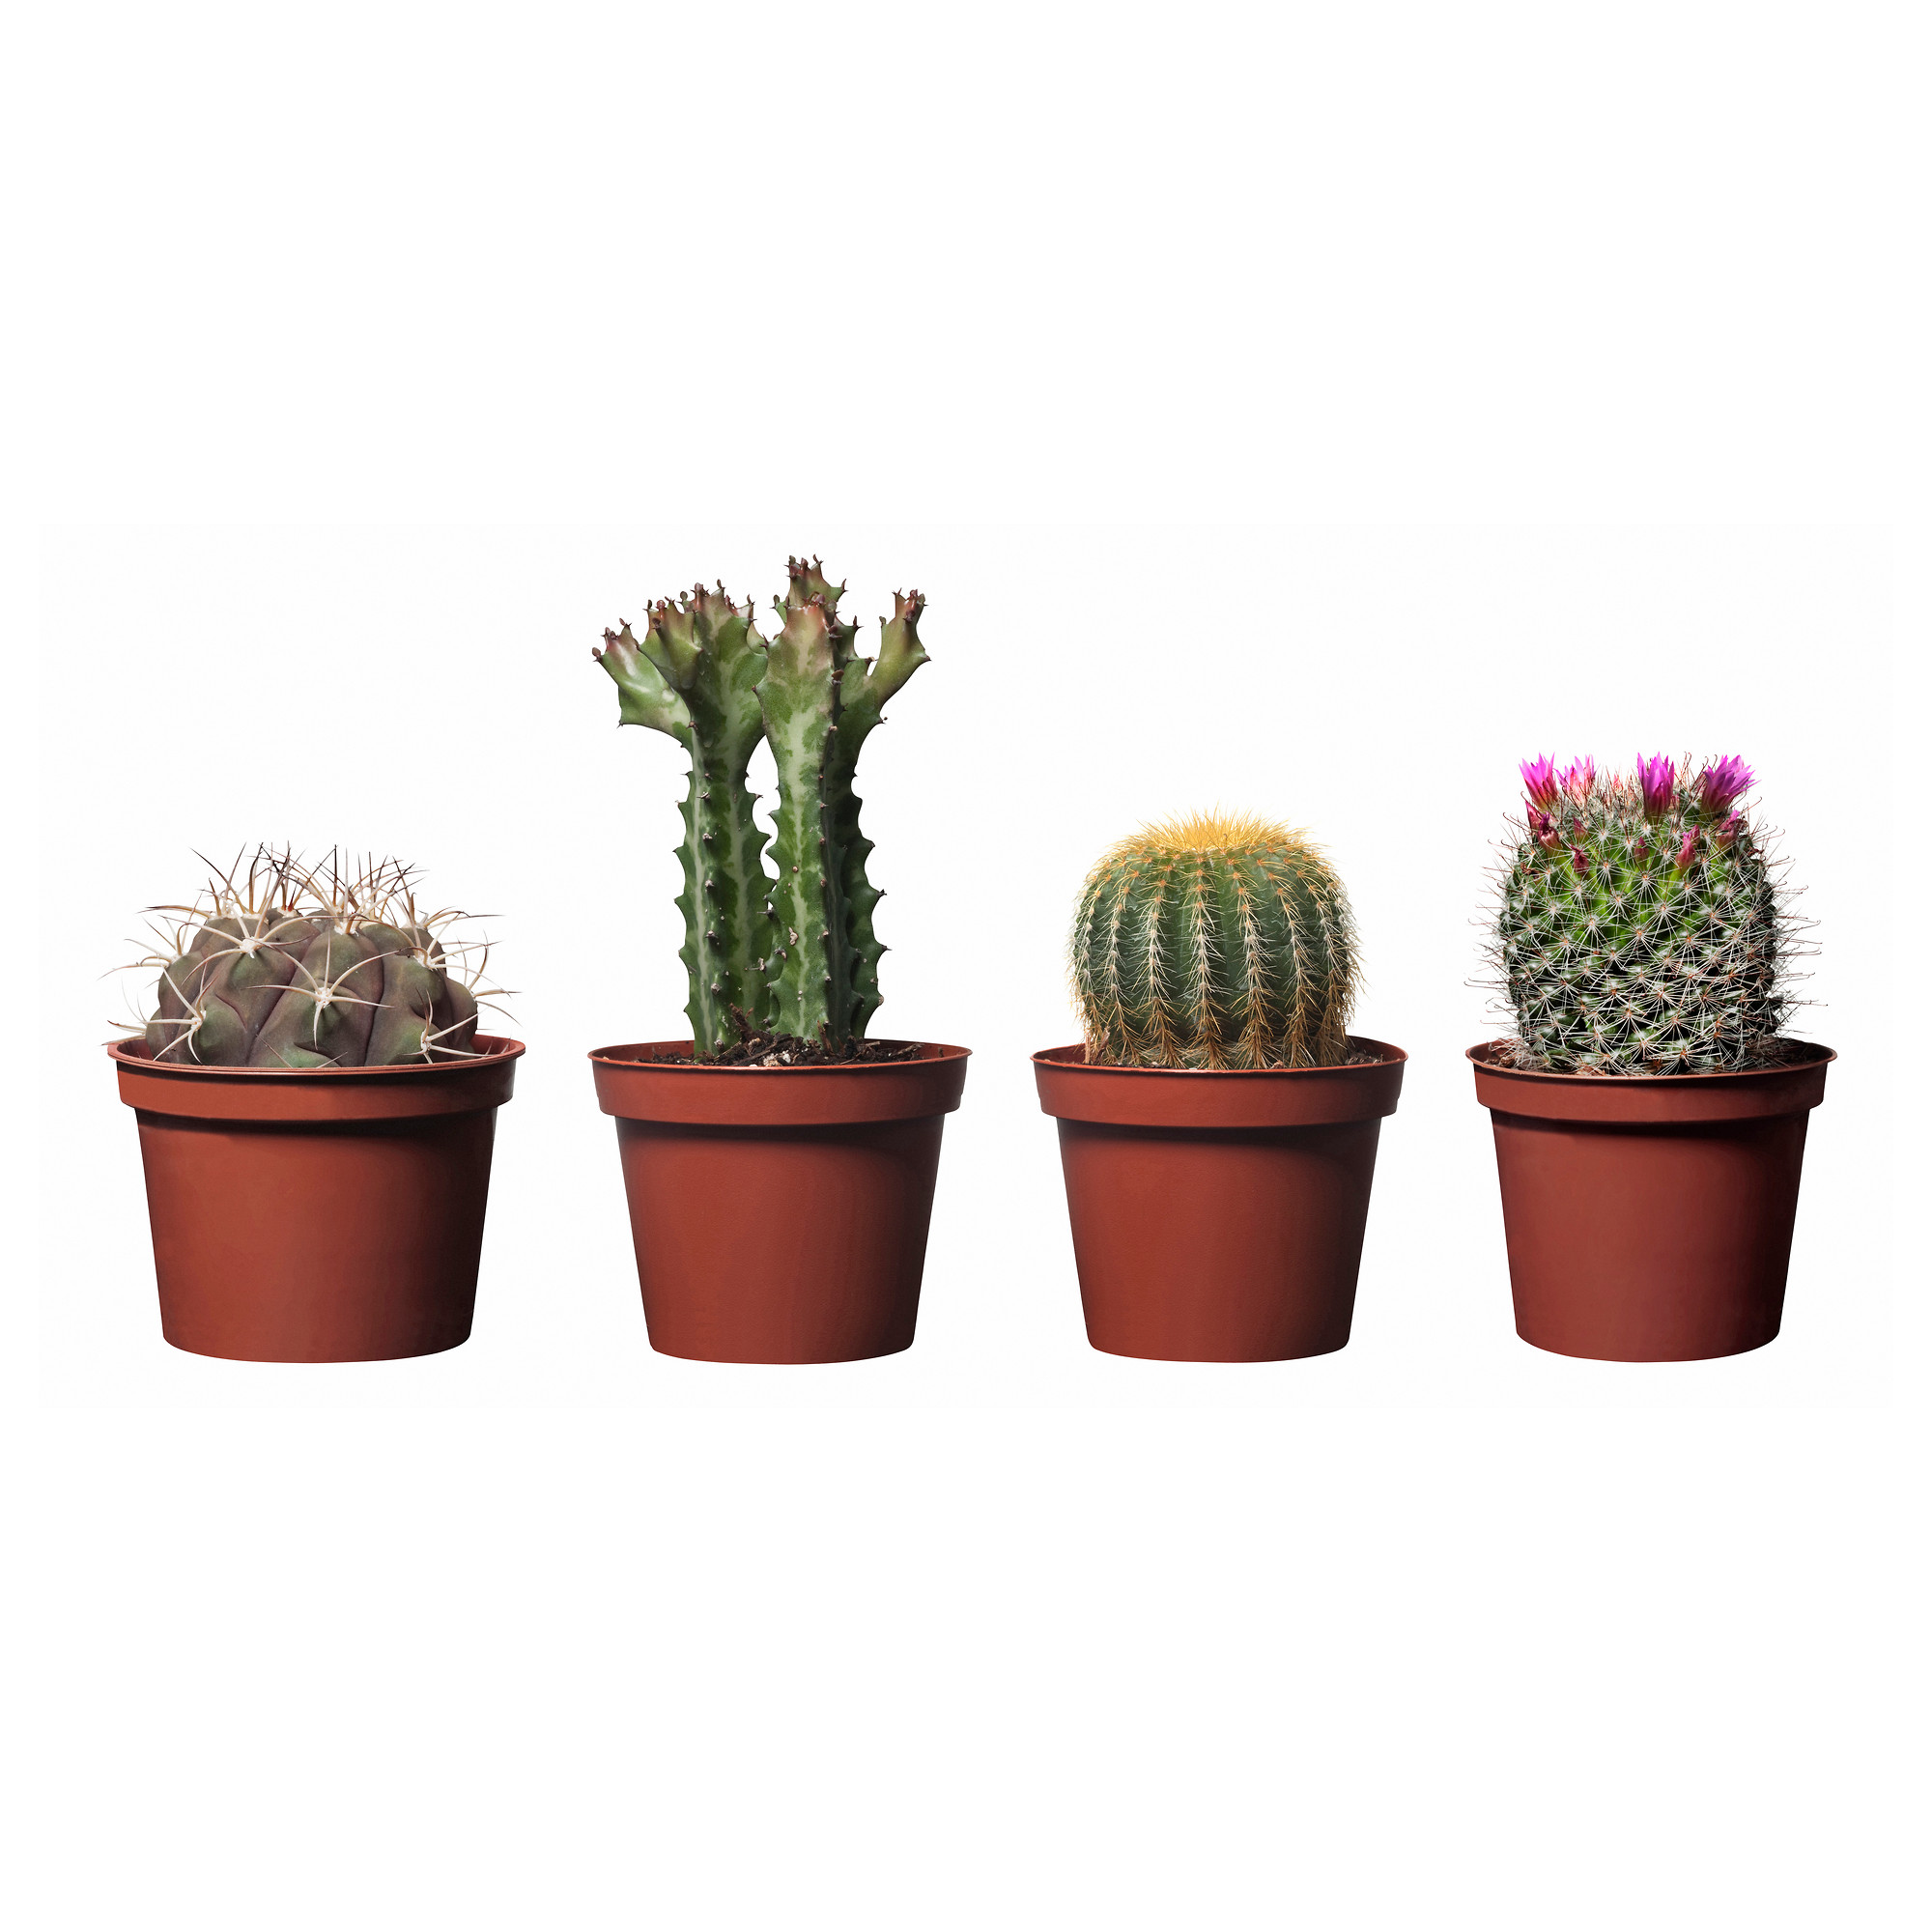 Ikea cactus plants home designs project Cactus pots for sale